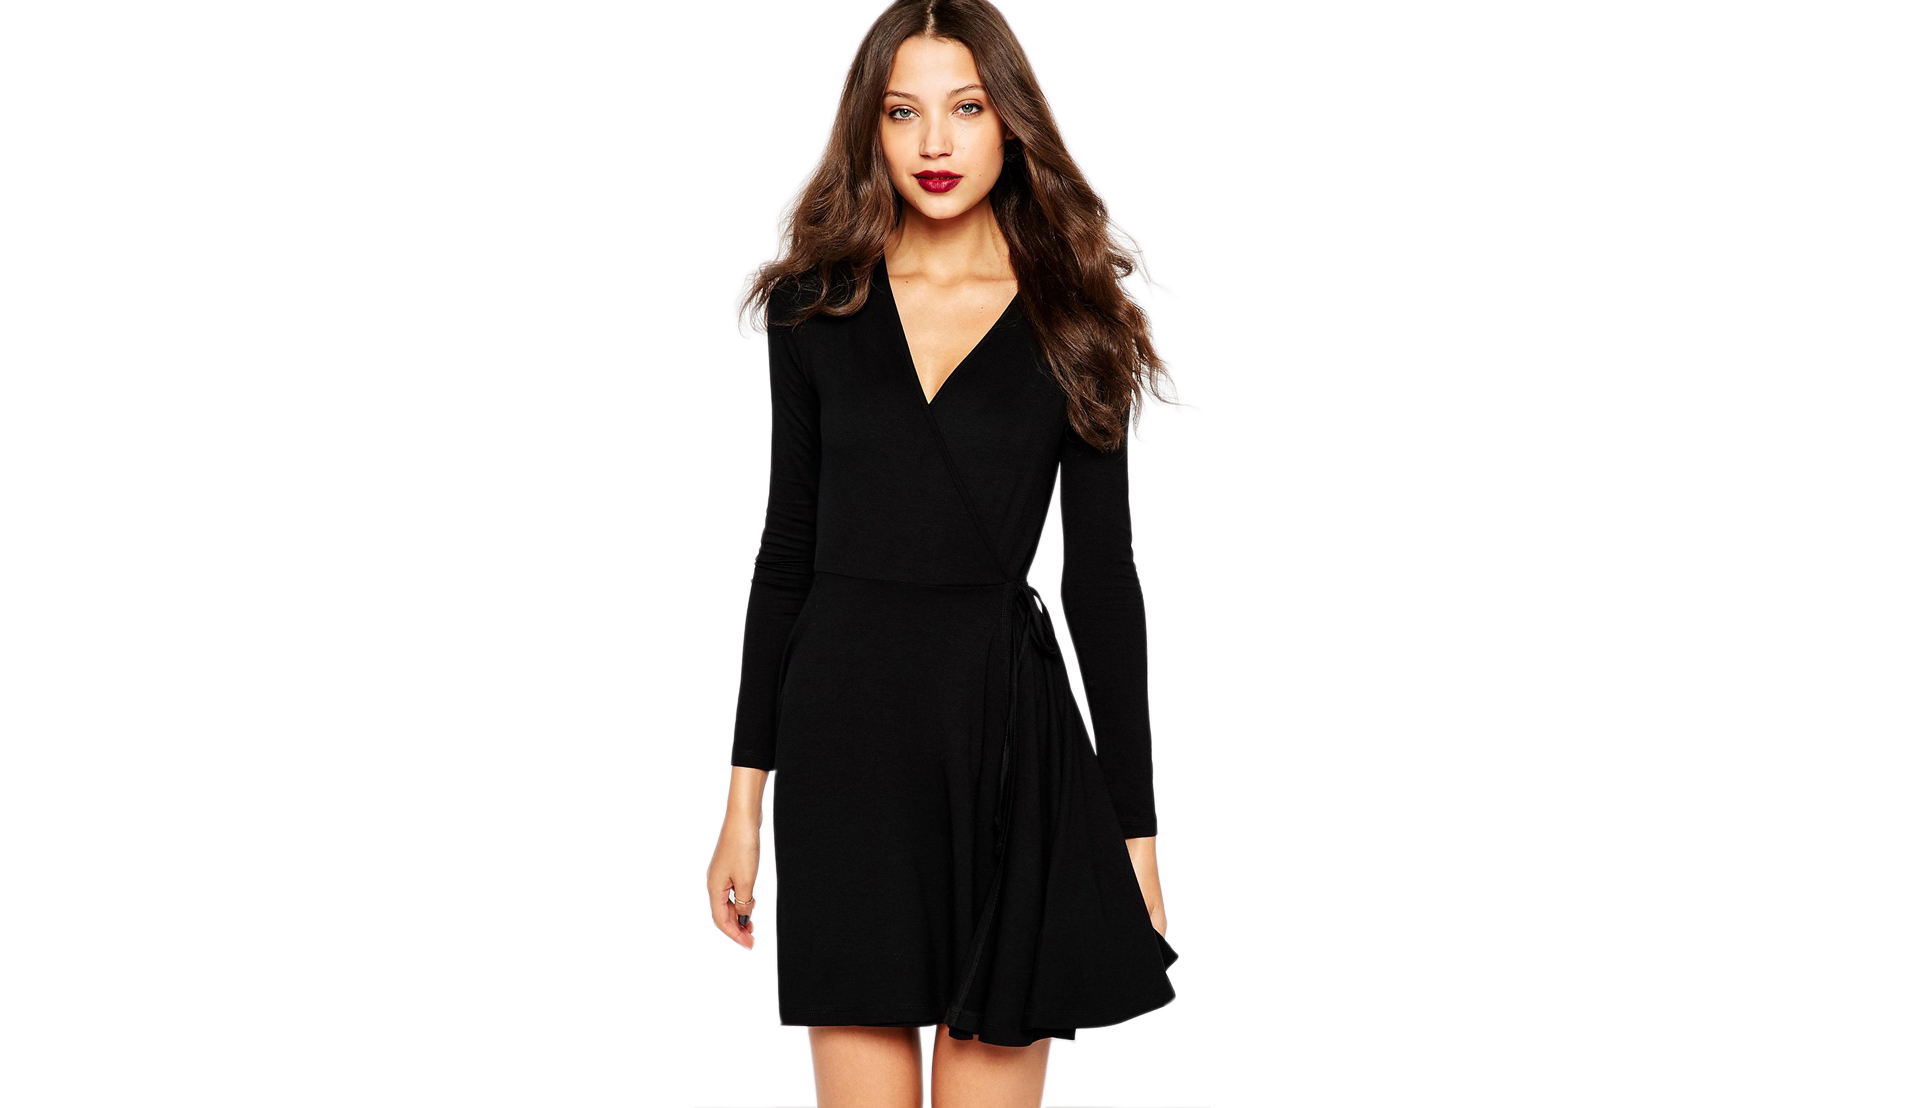 72436d1eb85 A Flattering Little Black Dress for Every Body Type